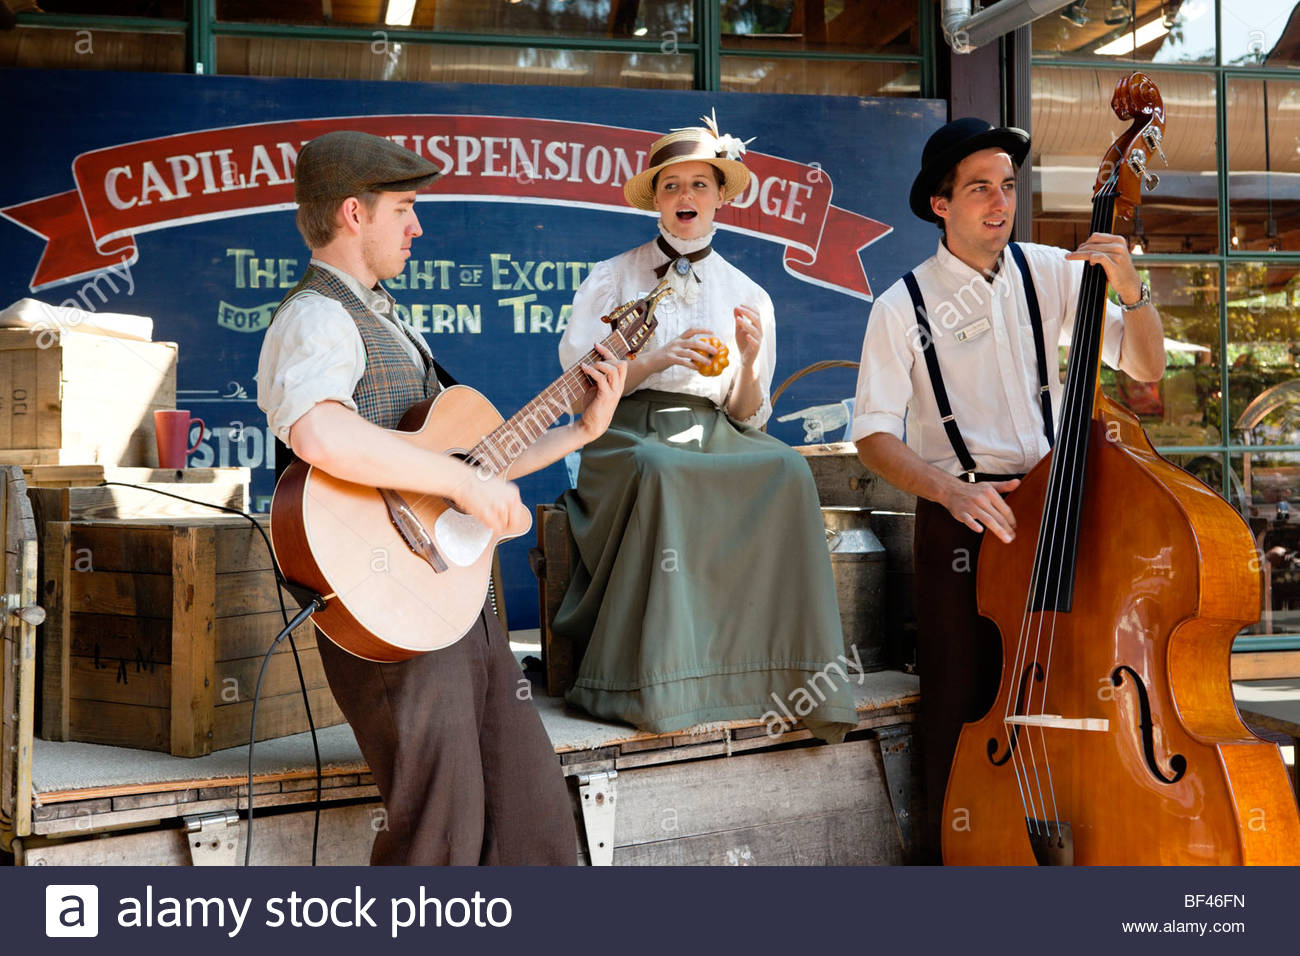 Old-Time Musicians Singing a Song at Capilano Suspension Bridge, North Vancouver, B.C. - Stock Image